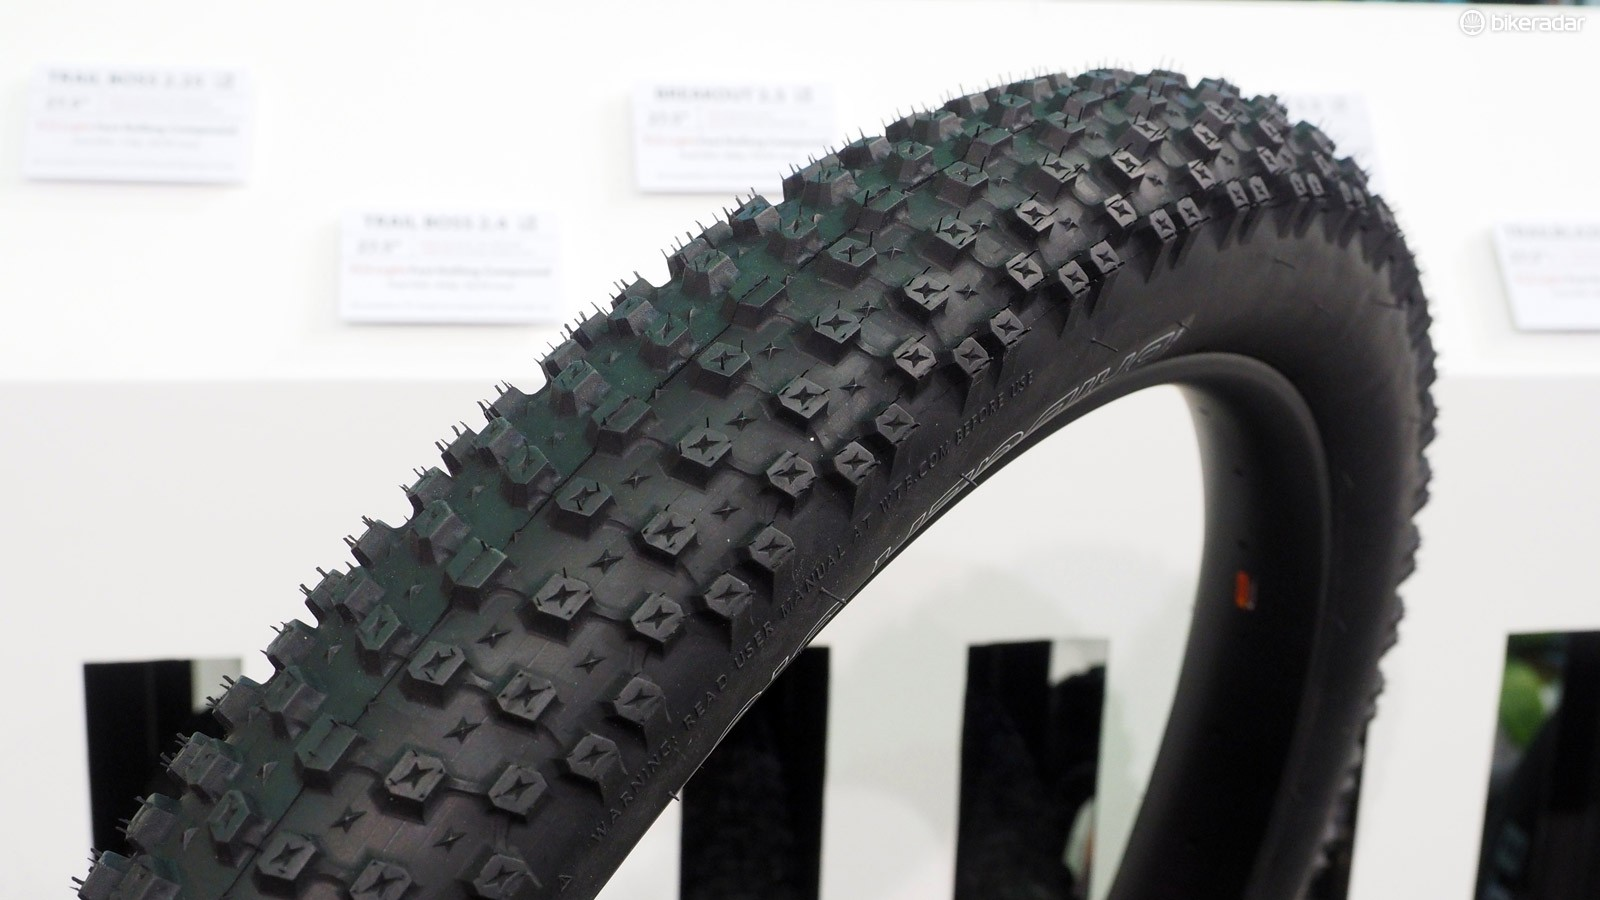 WTB has launched the new Bridger tyre, which has a generous 3.0in width, a versatile looking tread design, and your choice between a lighter and supple casing, or a heavier and tougher one